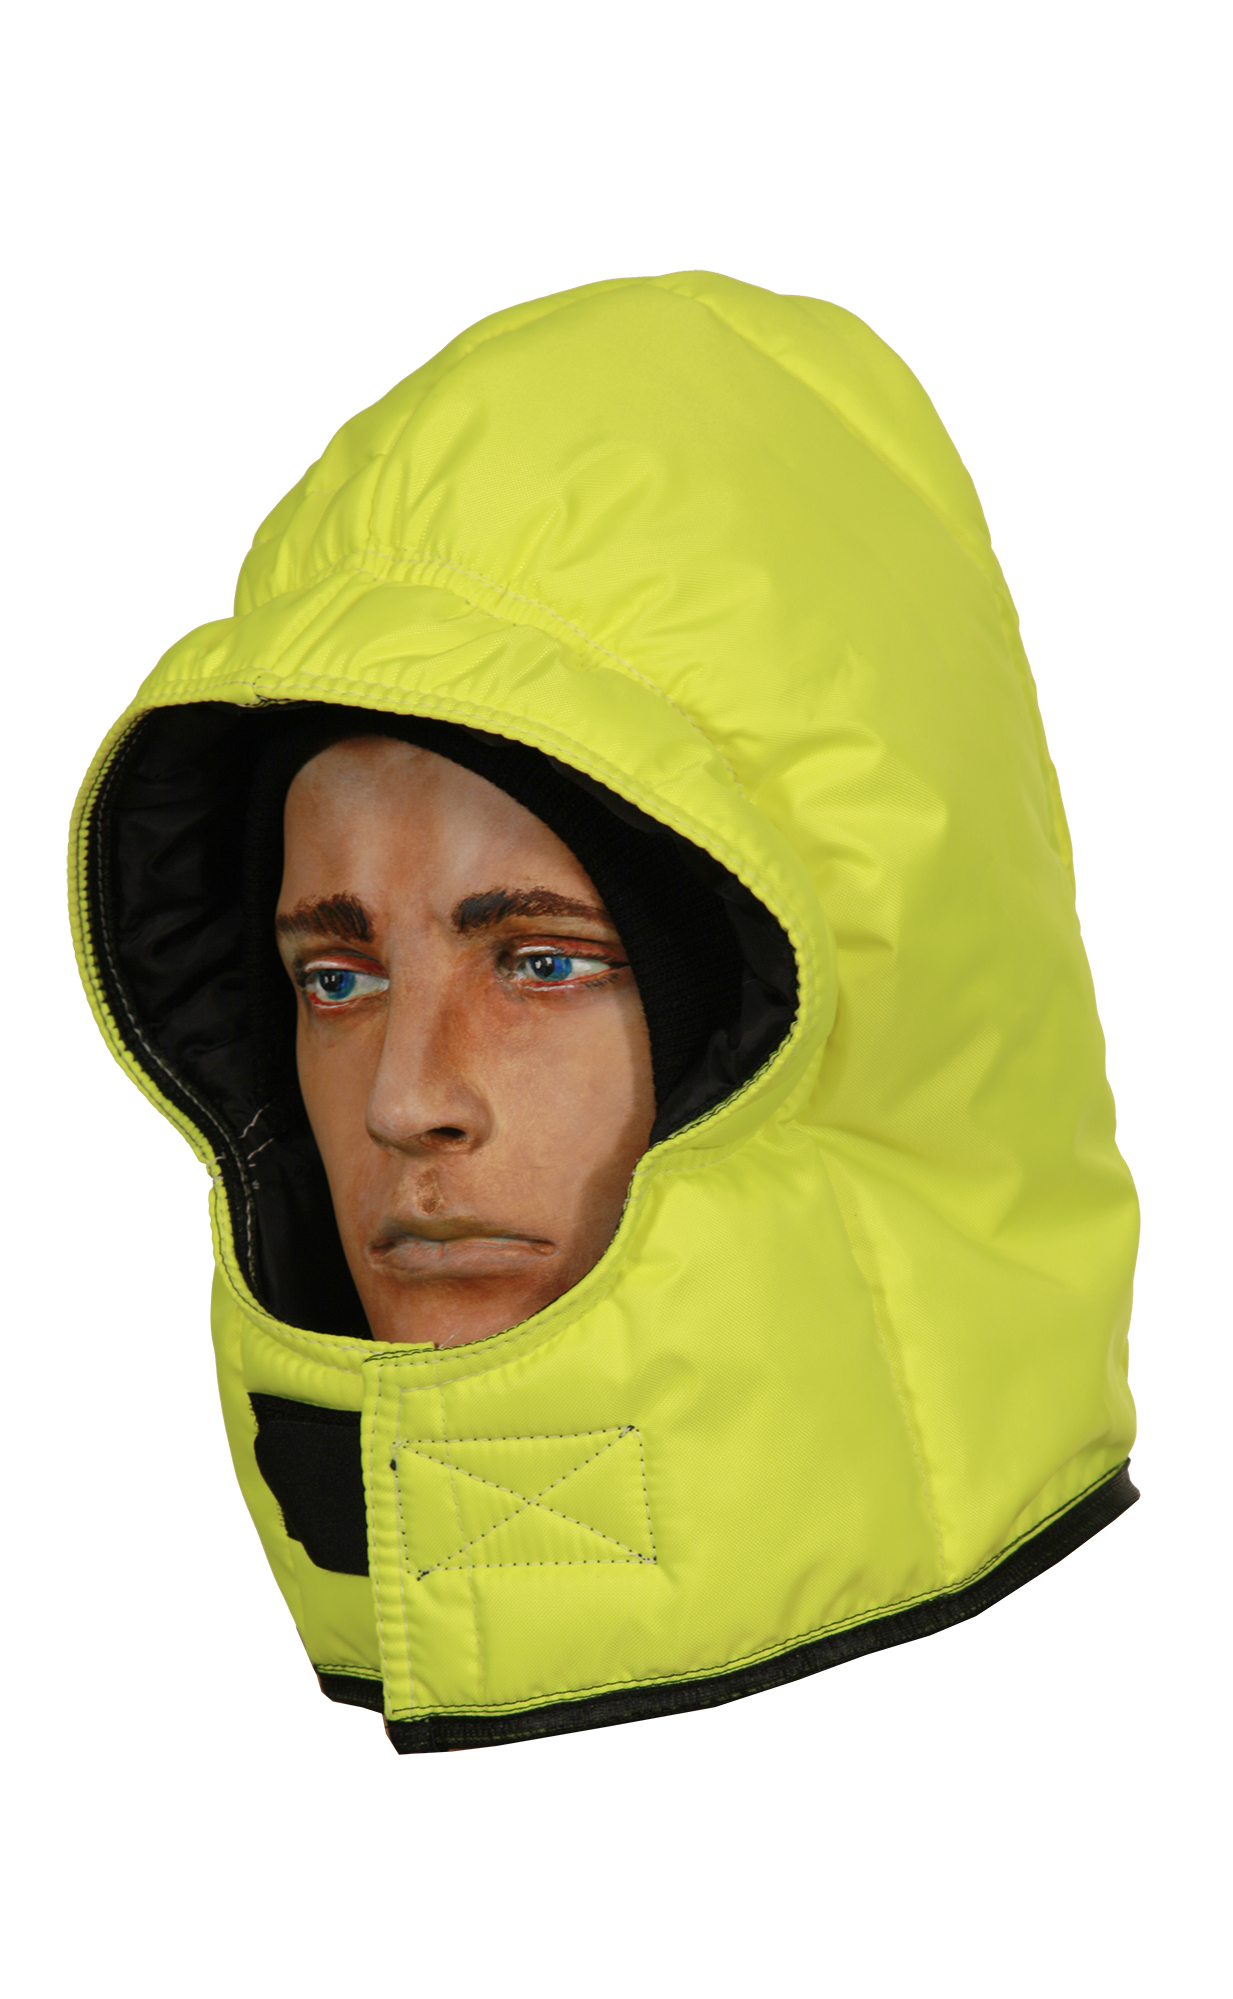 High Visibility Insulated Hood MADE IN USA